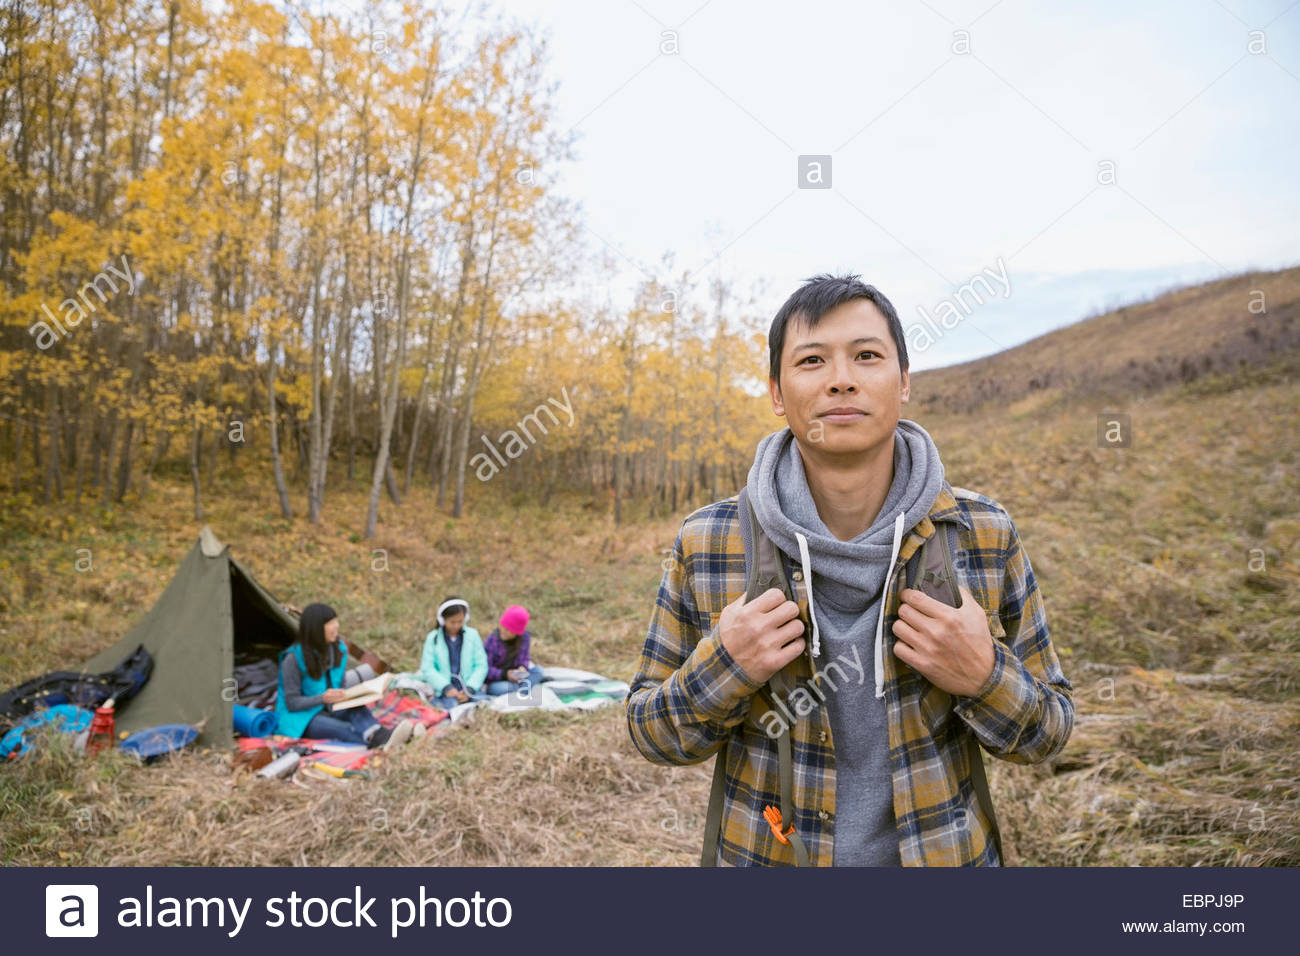 Portrait of man camping with family - Stock Image